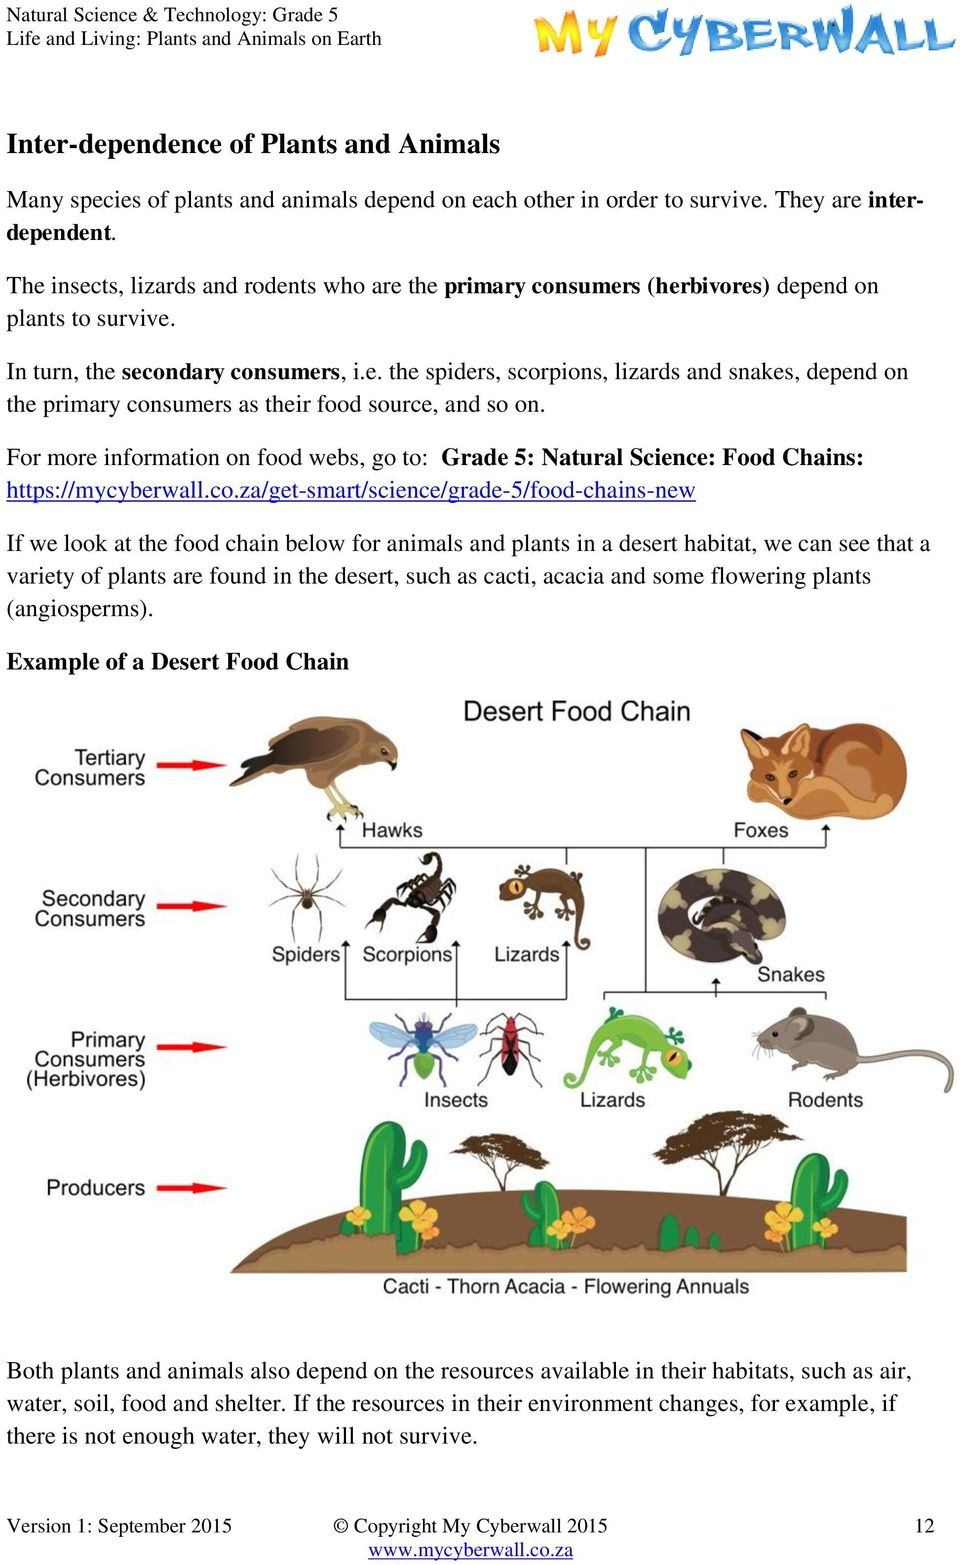 For more information on food webs, go to: Grade 5: Natural Science: Food Chains: https://mycyberwall.co.